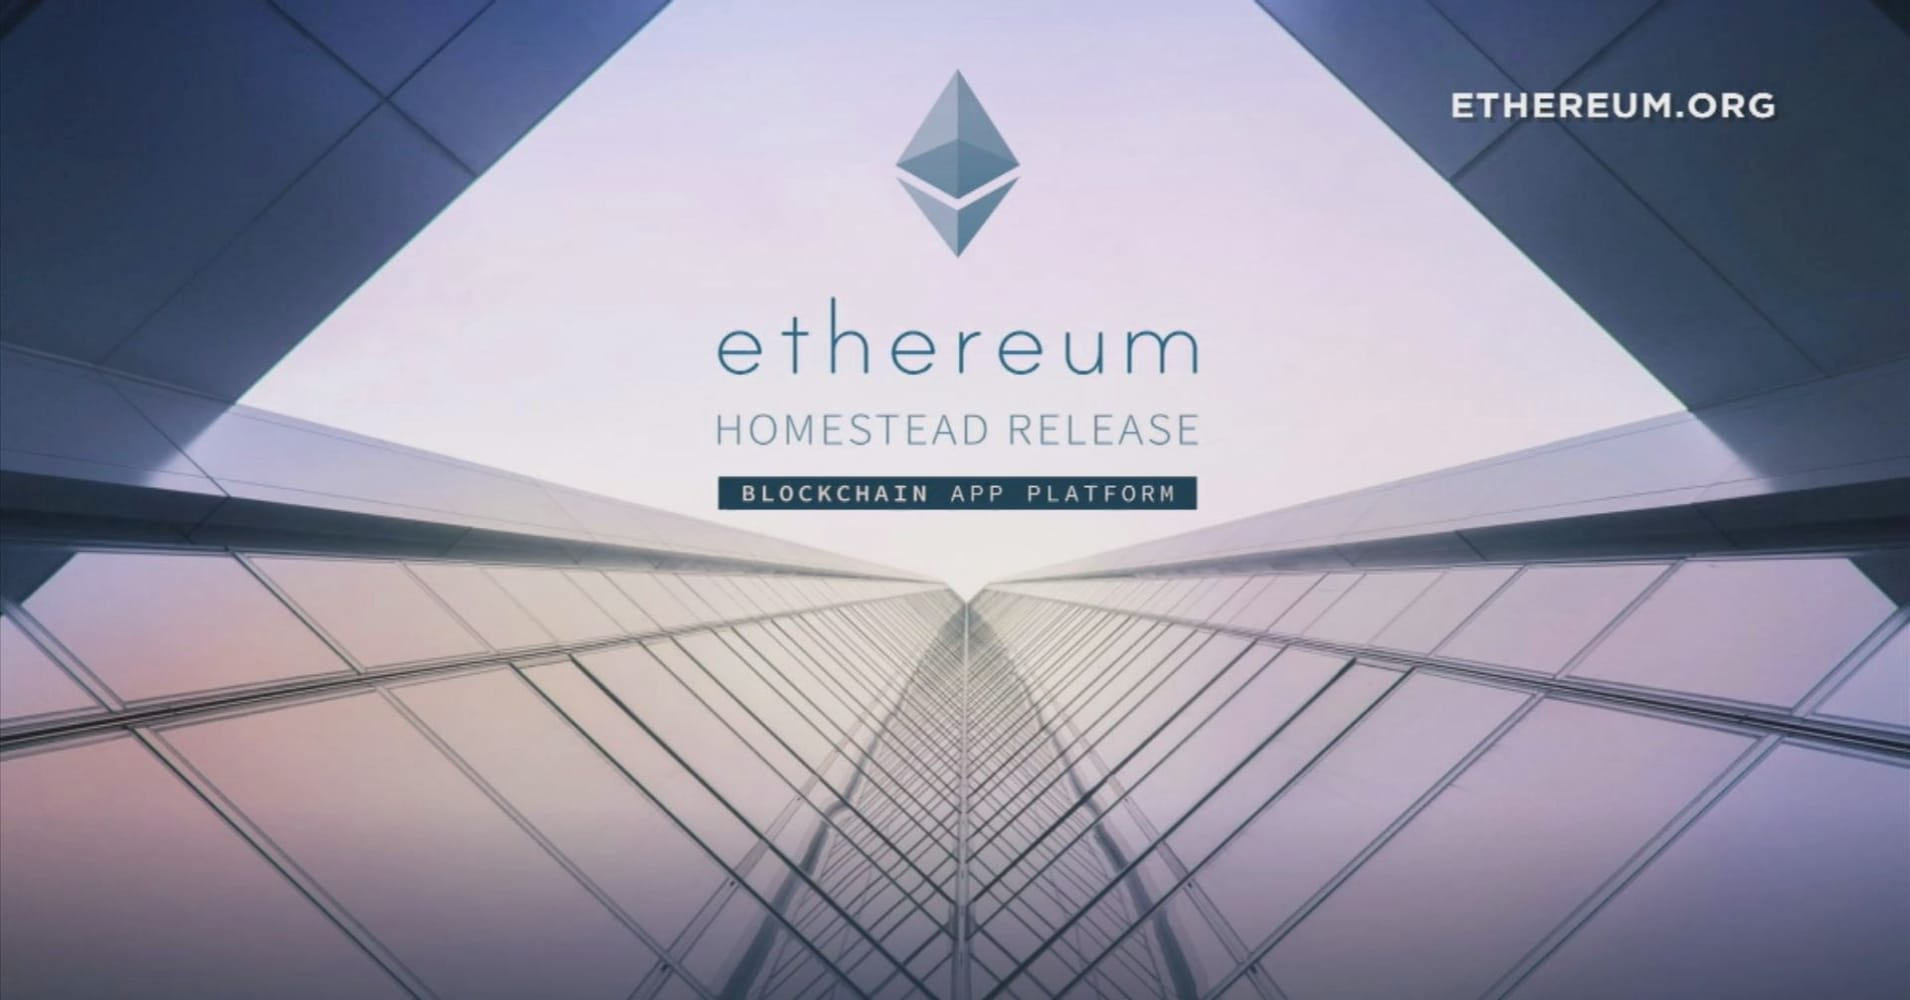 Ethereum hits another record high after bitcoin and is now up over 5,000% since the start of the year